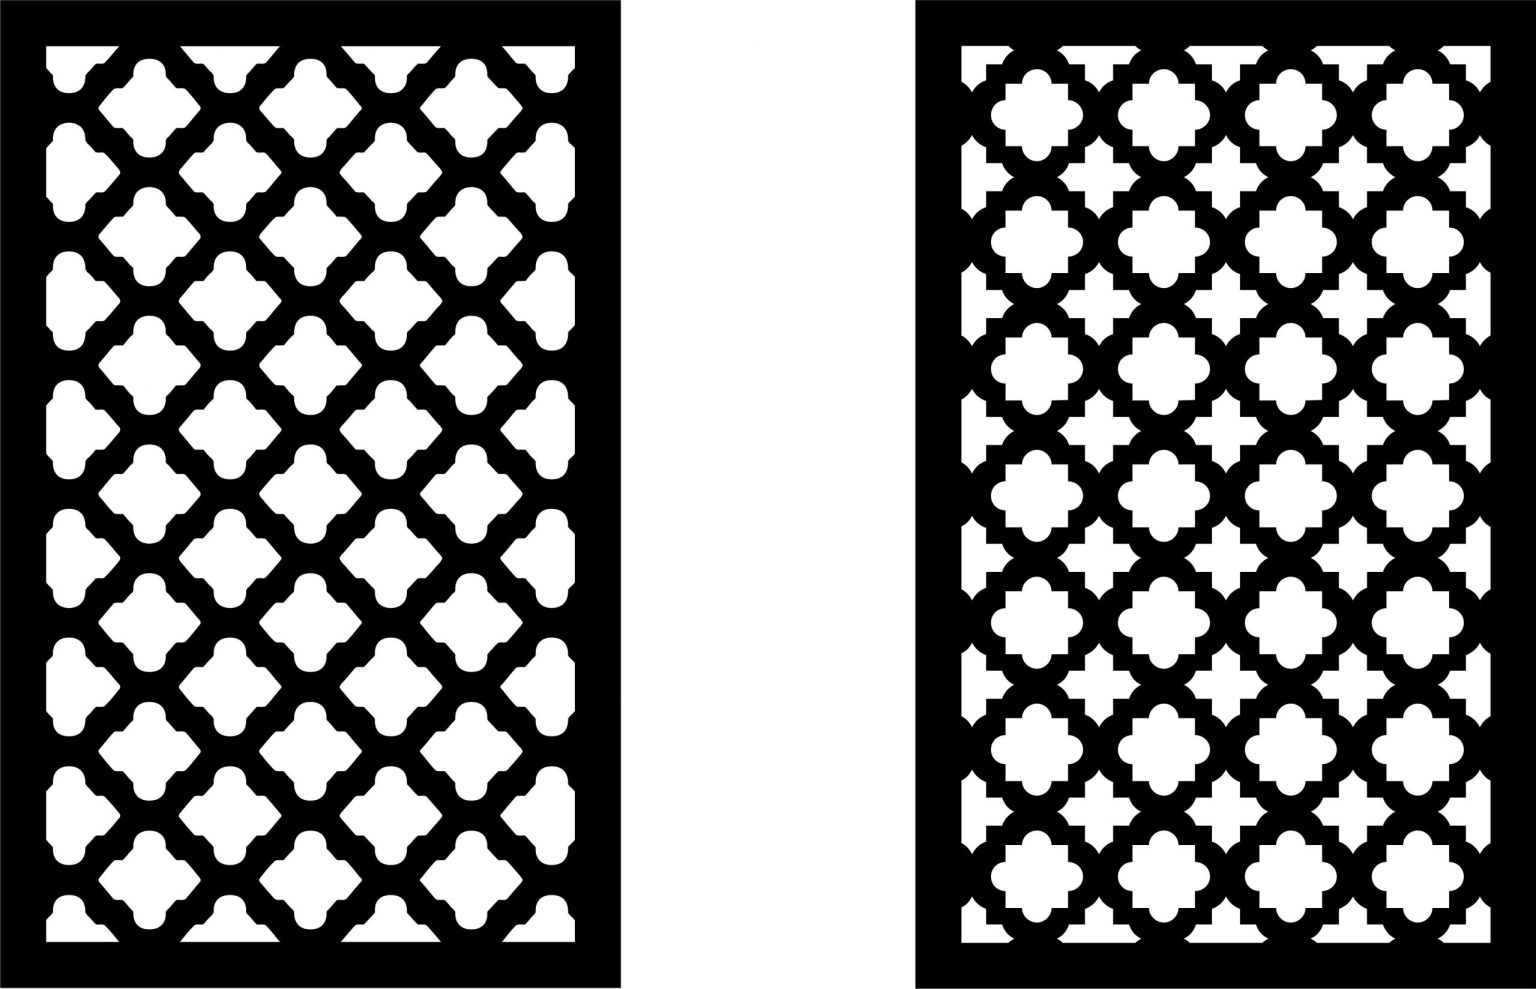 Decorative Screen Patterns For Laser Cutting 15 Free DXF File